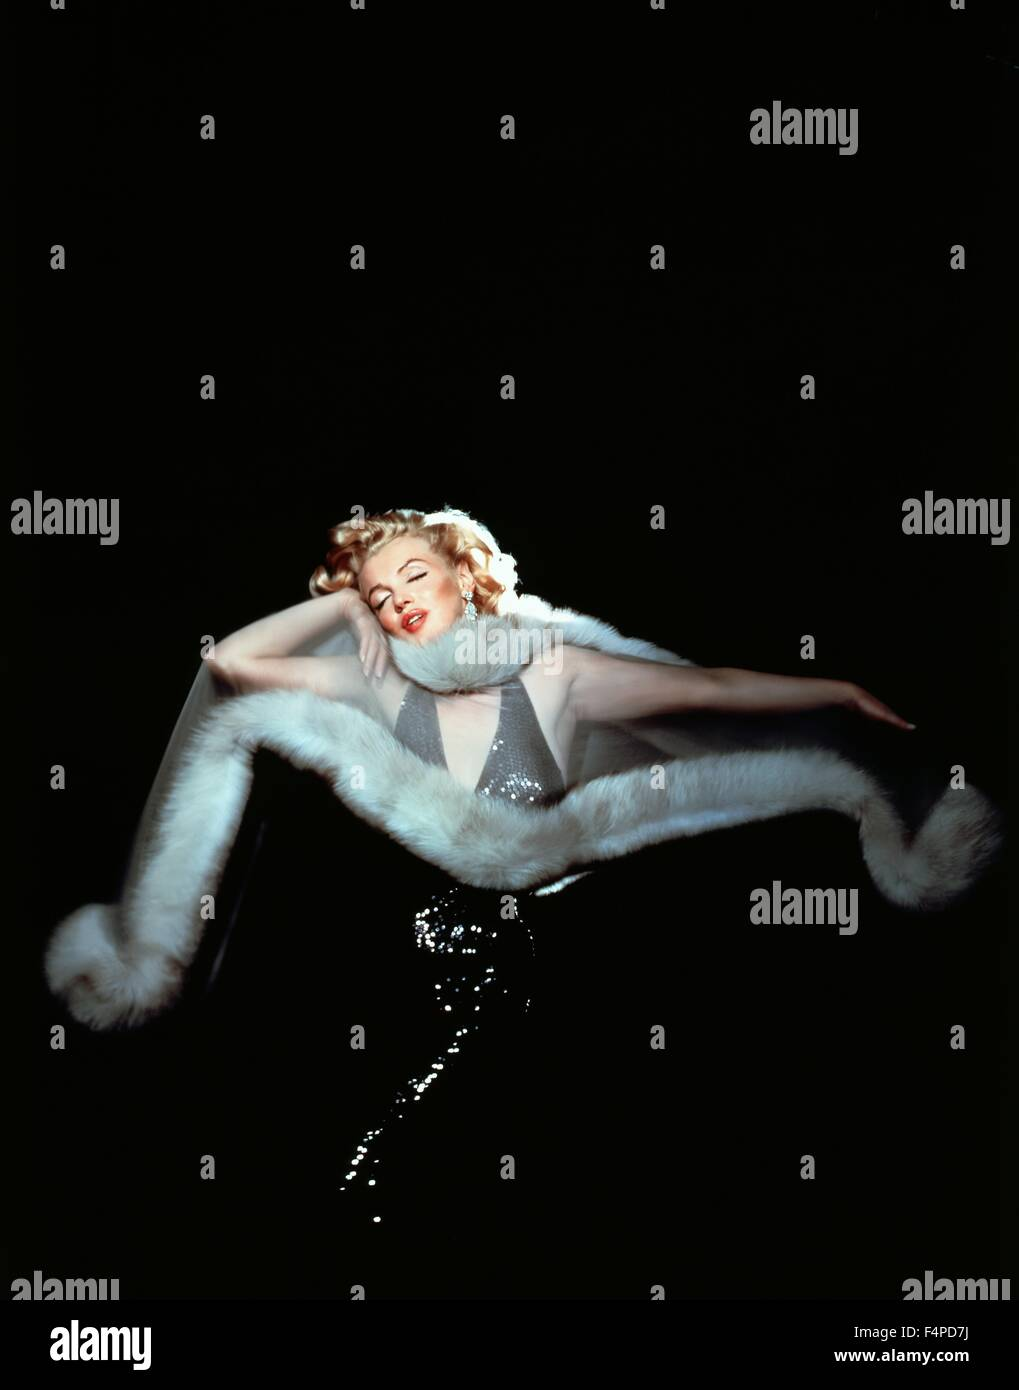 Marilyn Monroe / The Prince And The Showgirl 1957 directed by Laurence Olivier - Stock Image